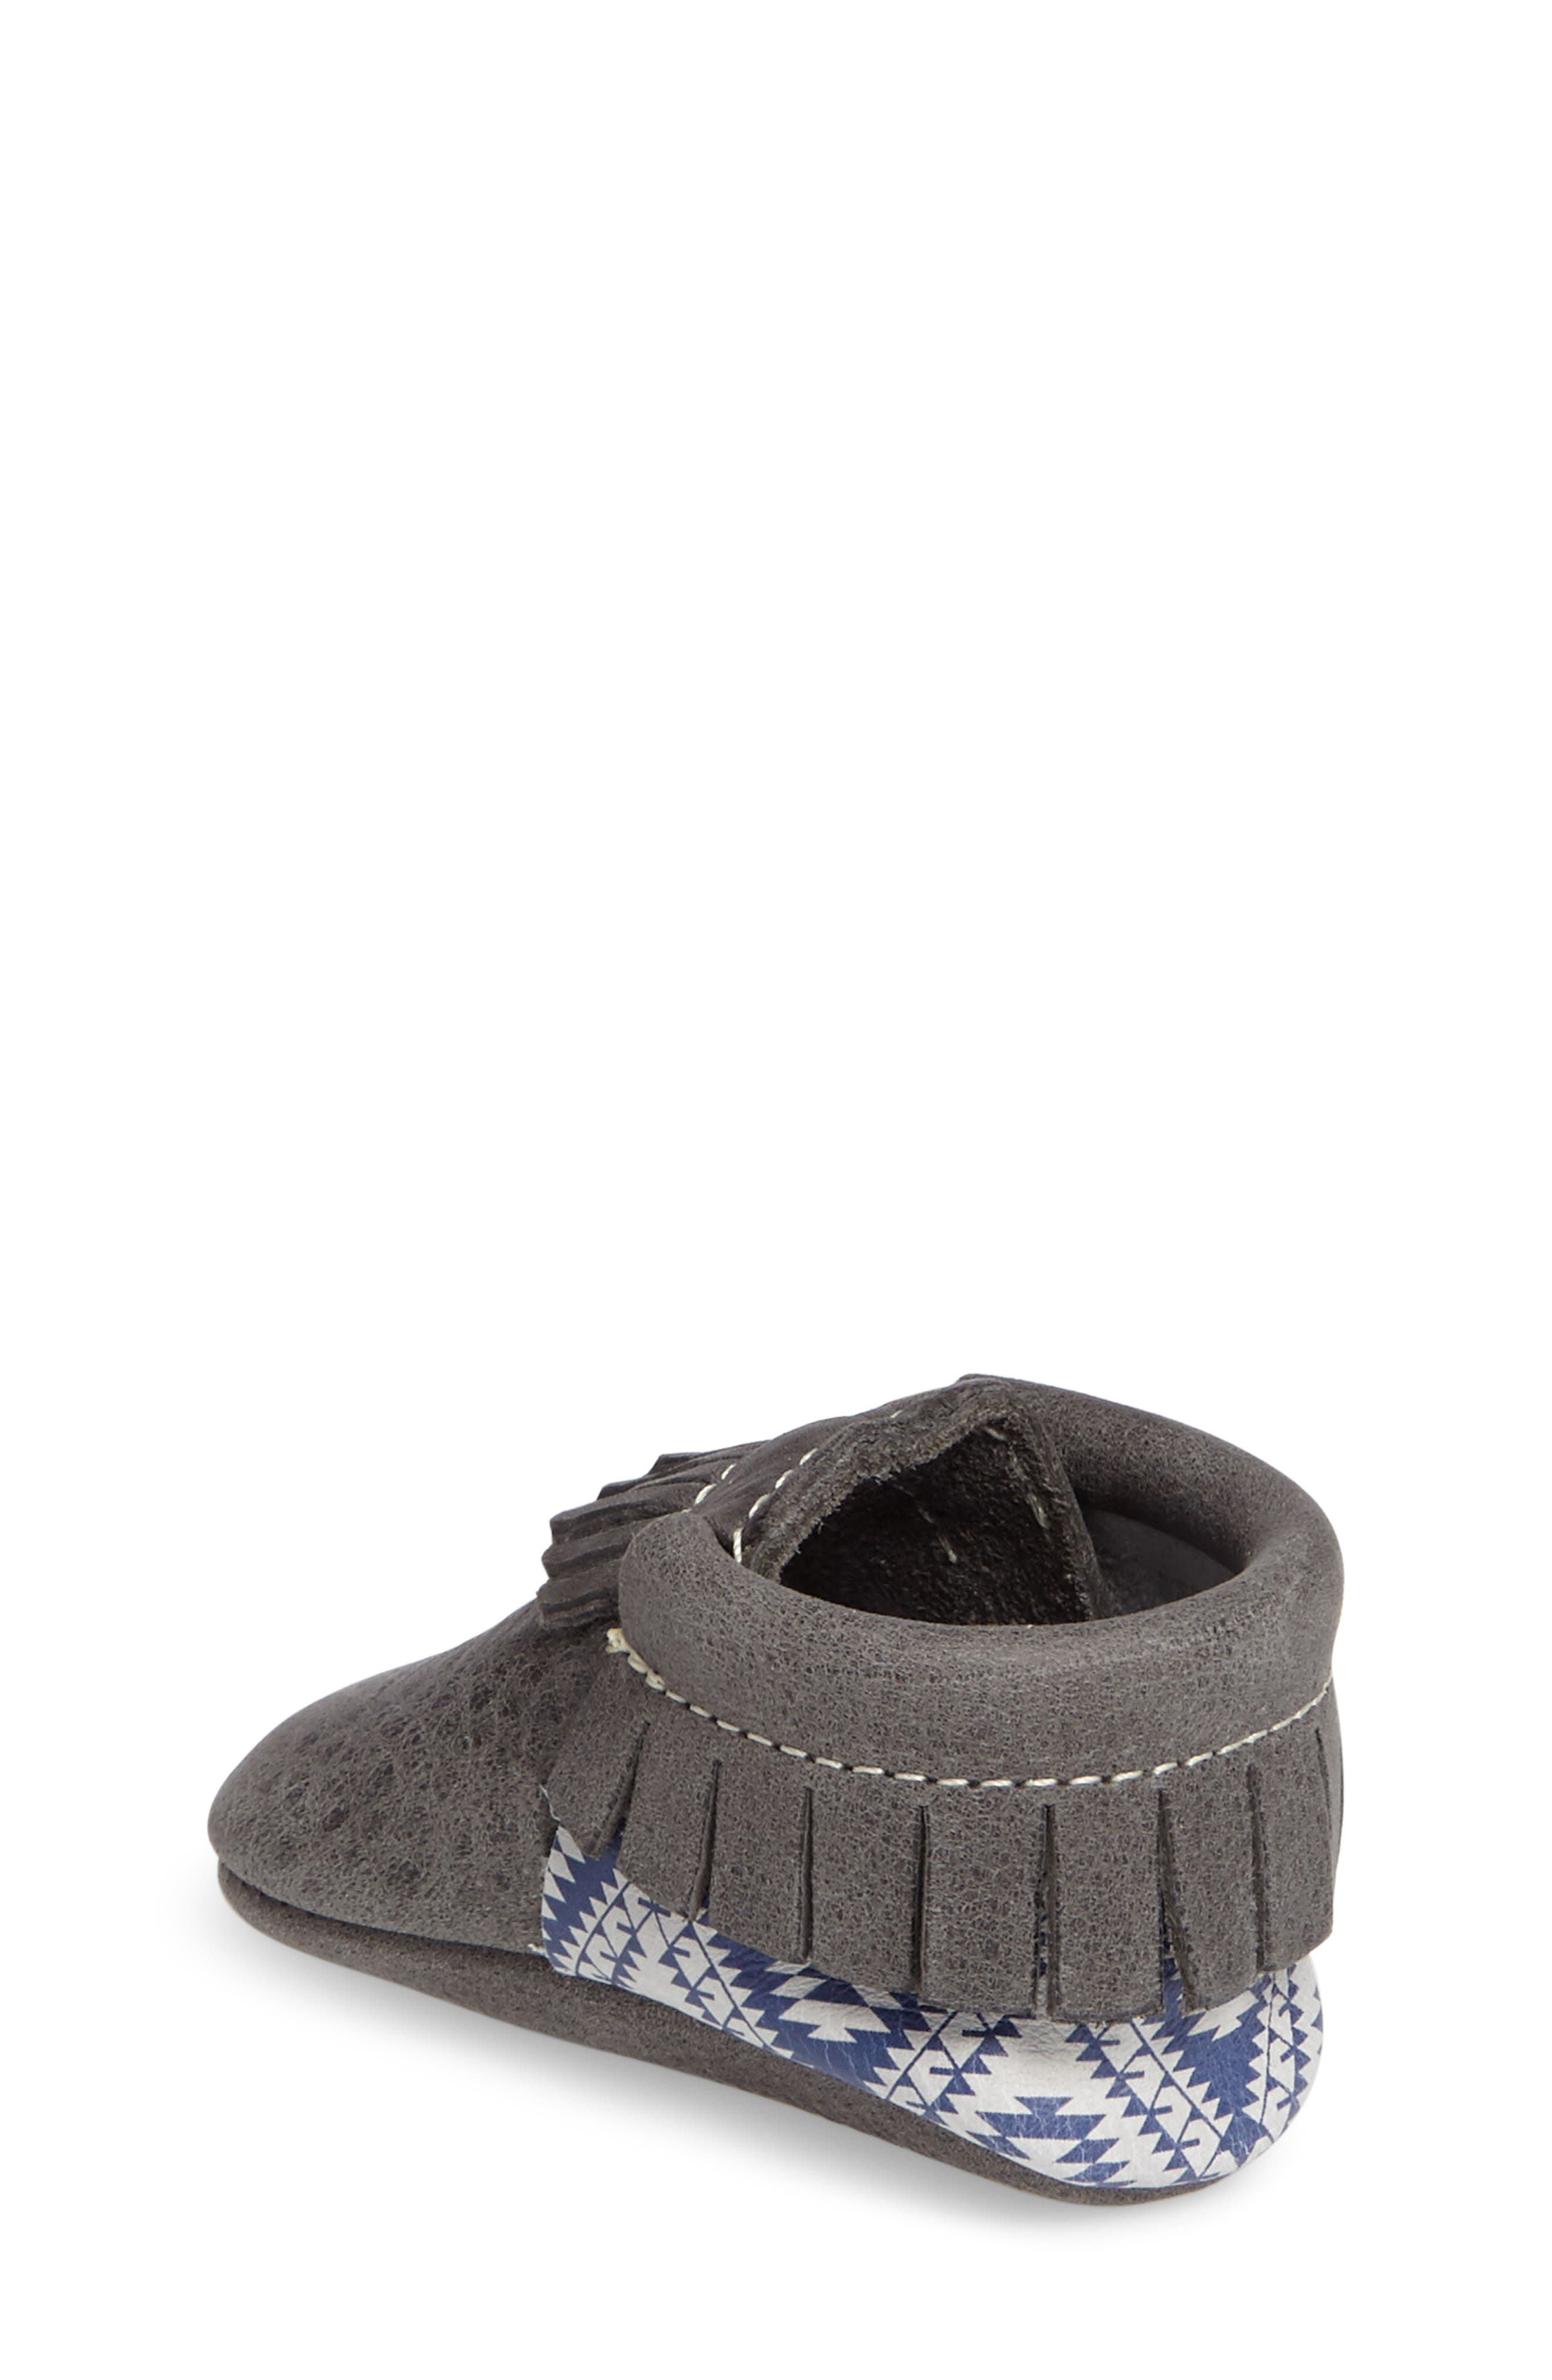 Leather Moccasin,                             Alternate thumbnail 2, color,                             Dark Grey Leather